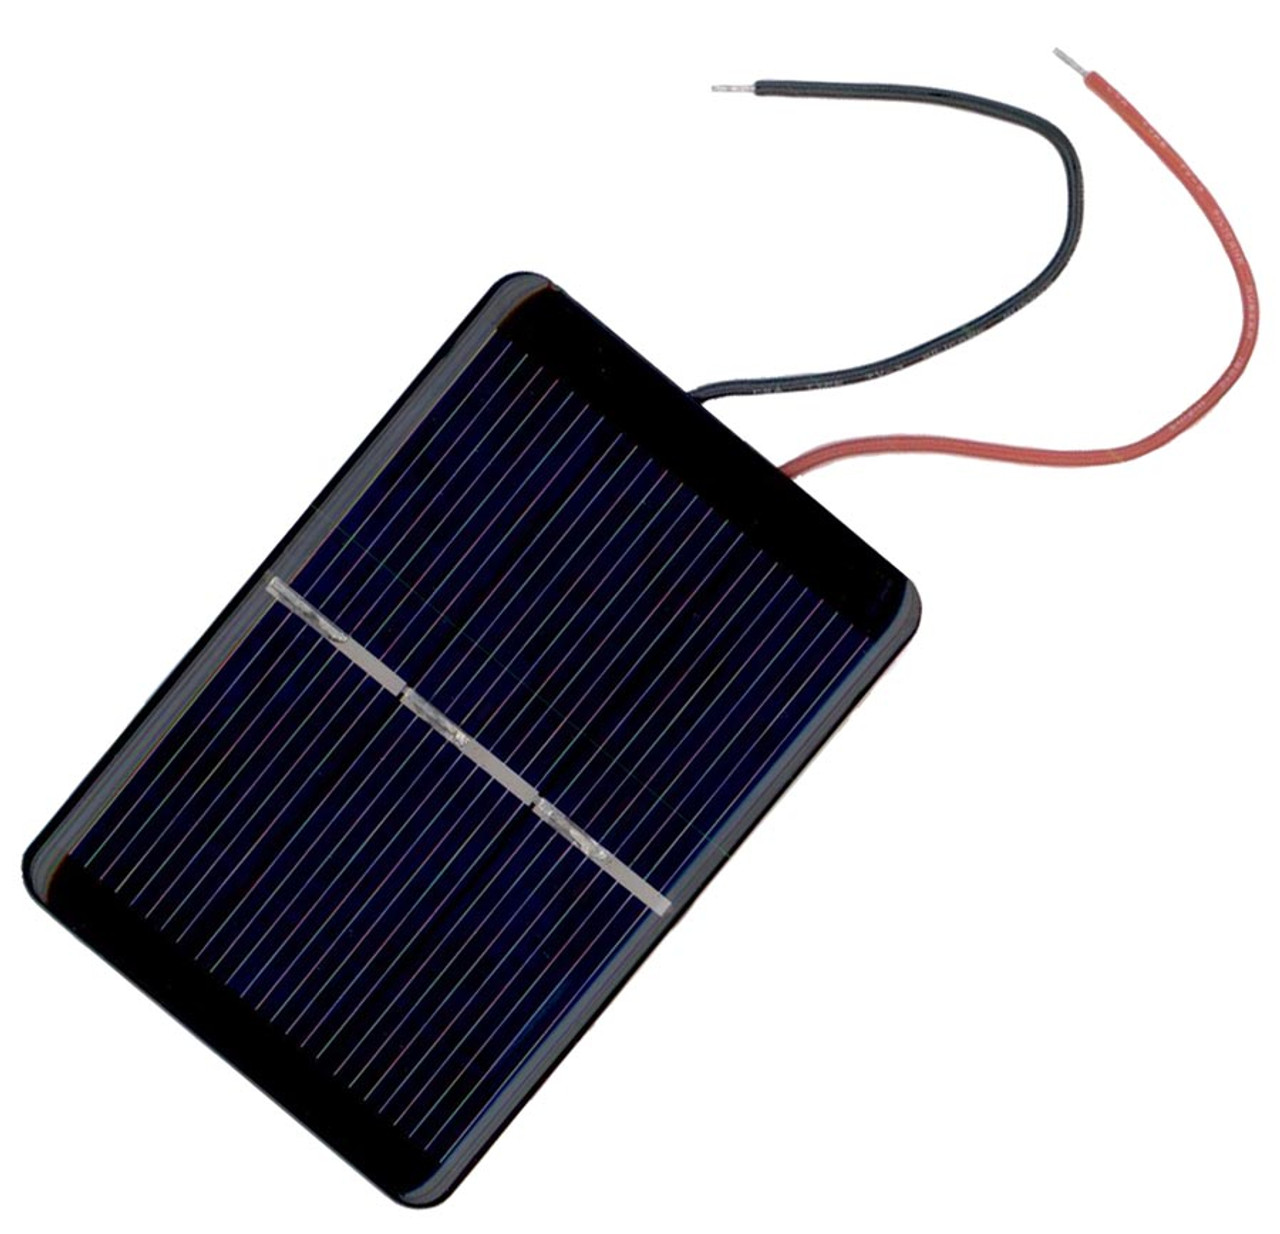 Buy Here Pay Here Ma >> Solar cell, 1.5 volt, 500 ma